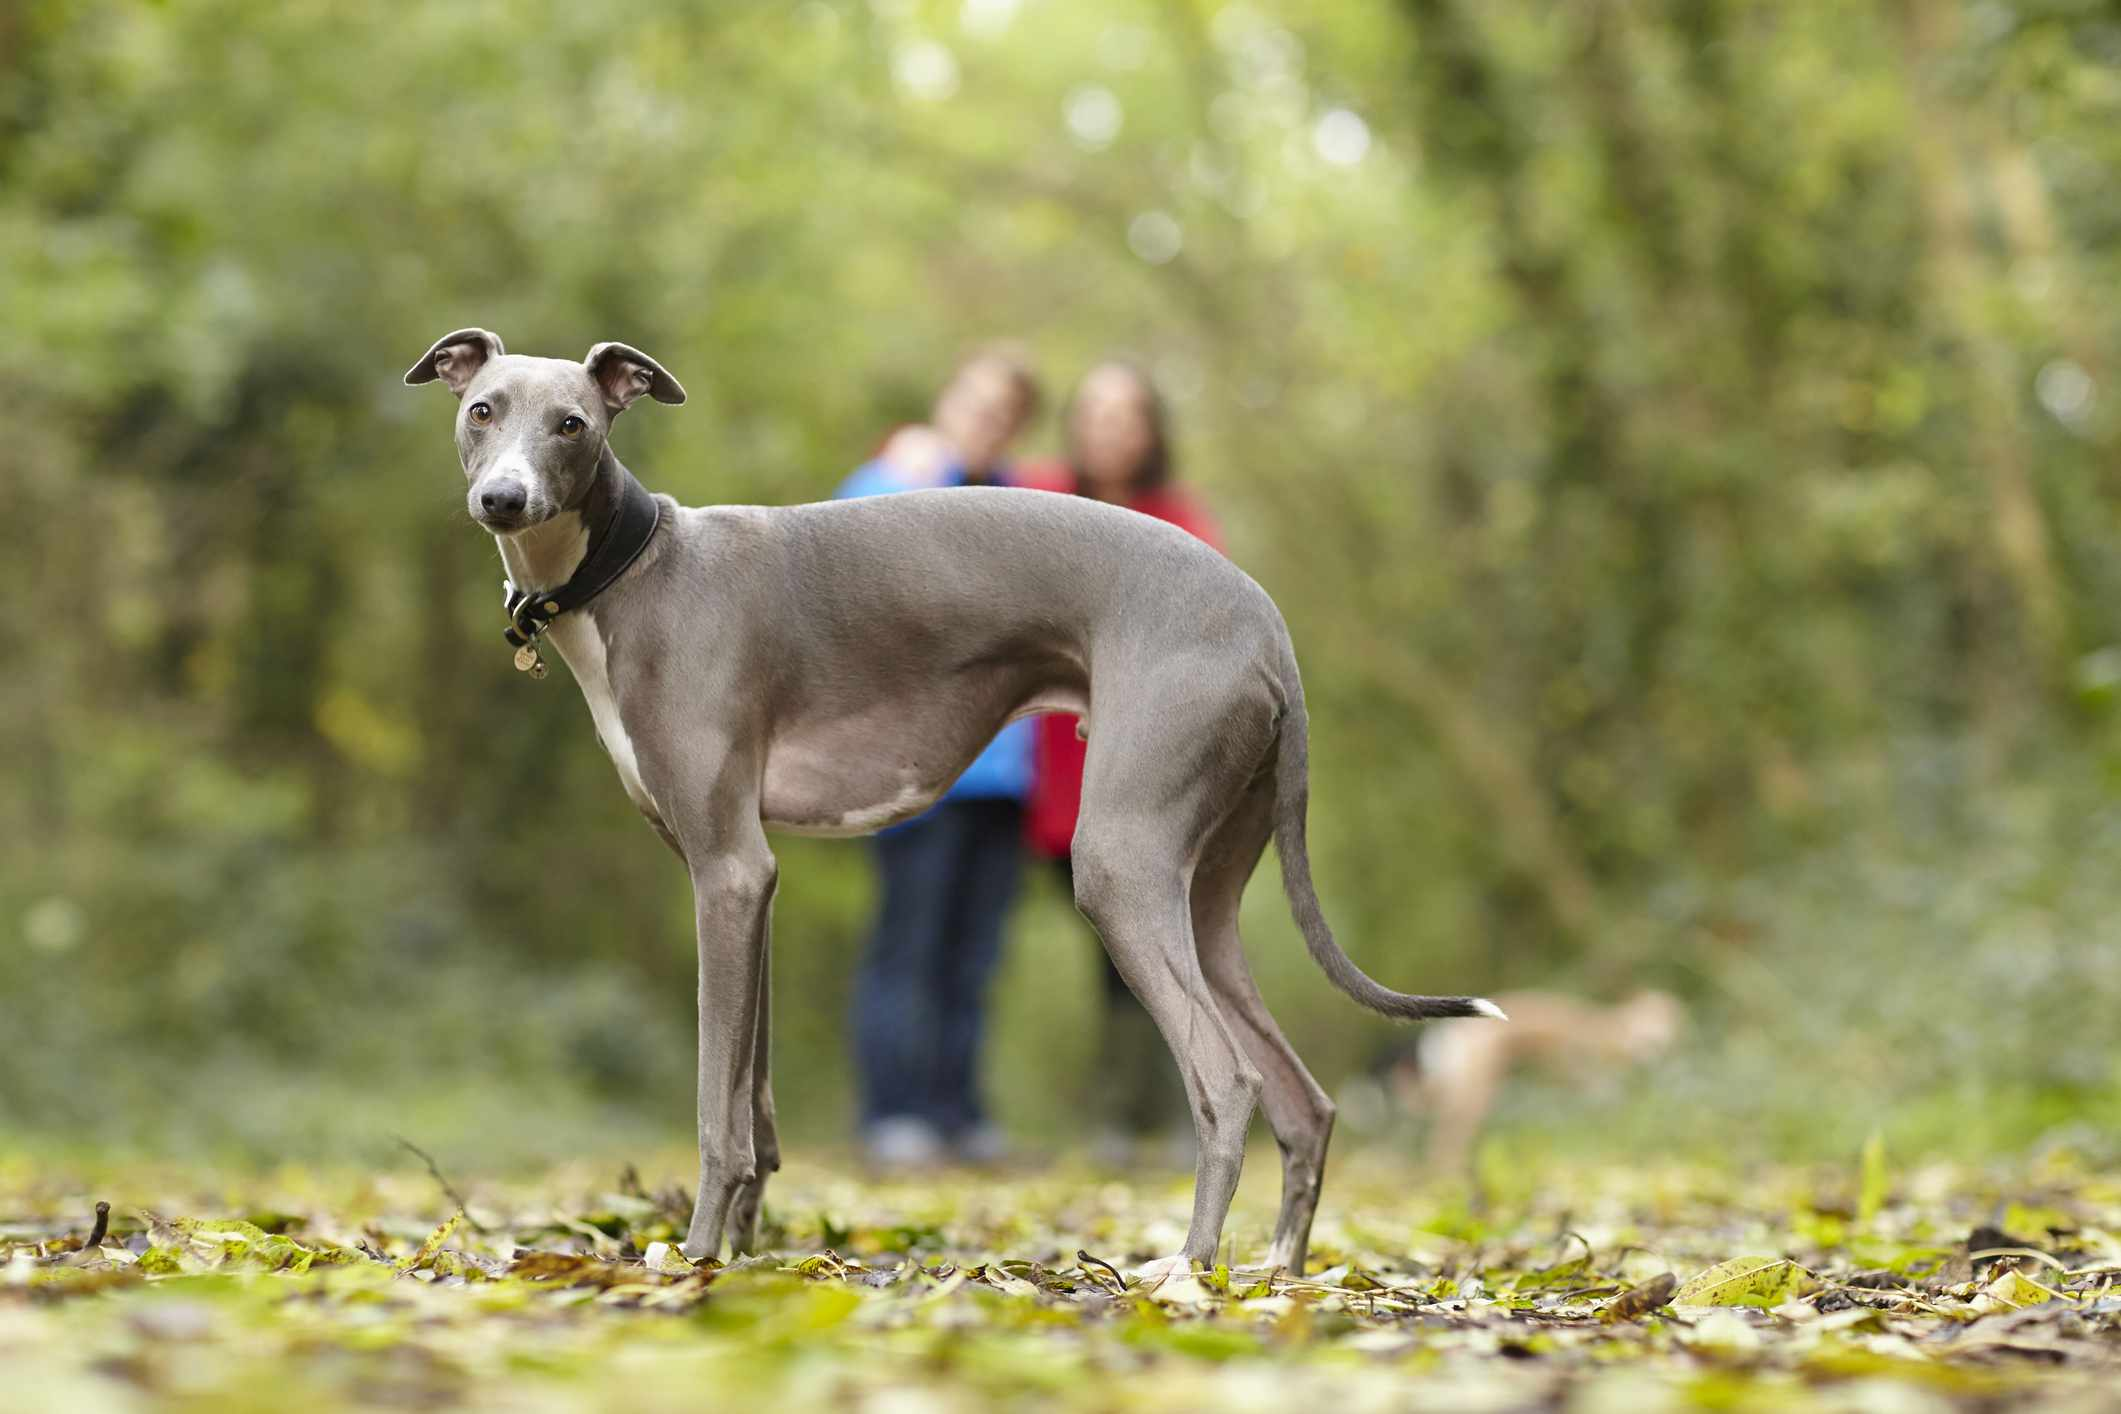 Whippet standing in a forest with people in the background